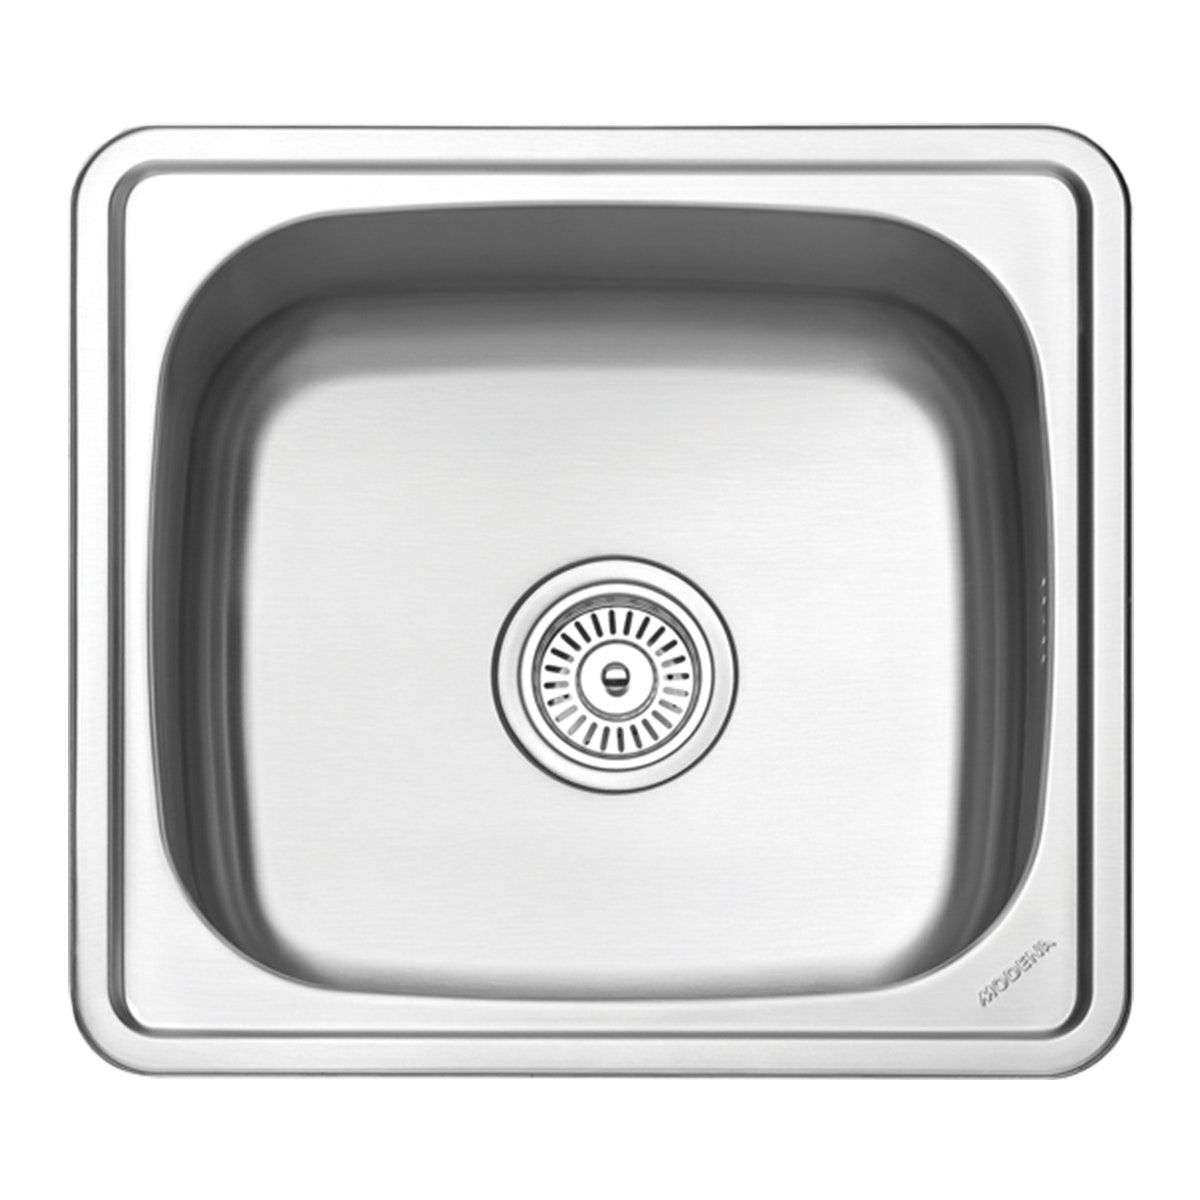 Modena Kitchen Sink 1 Bak BOLSENA KS 3100